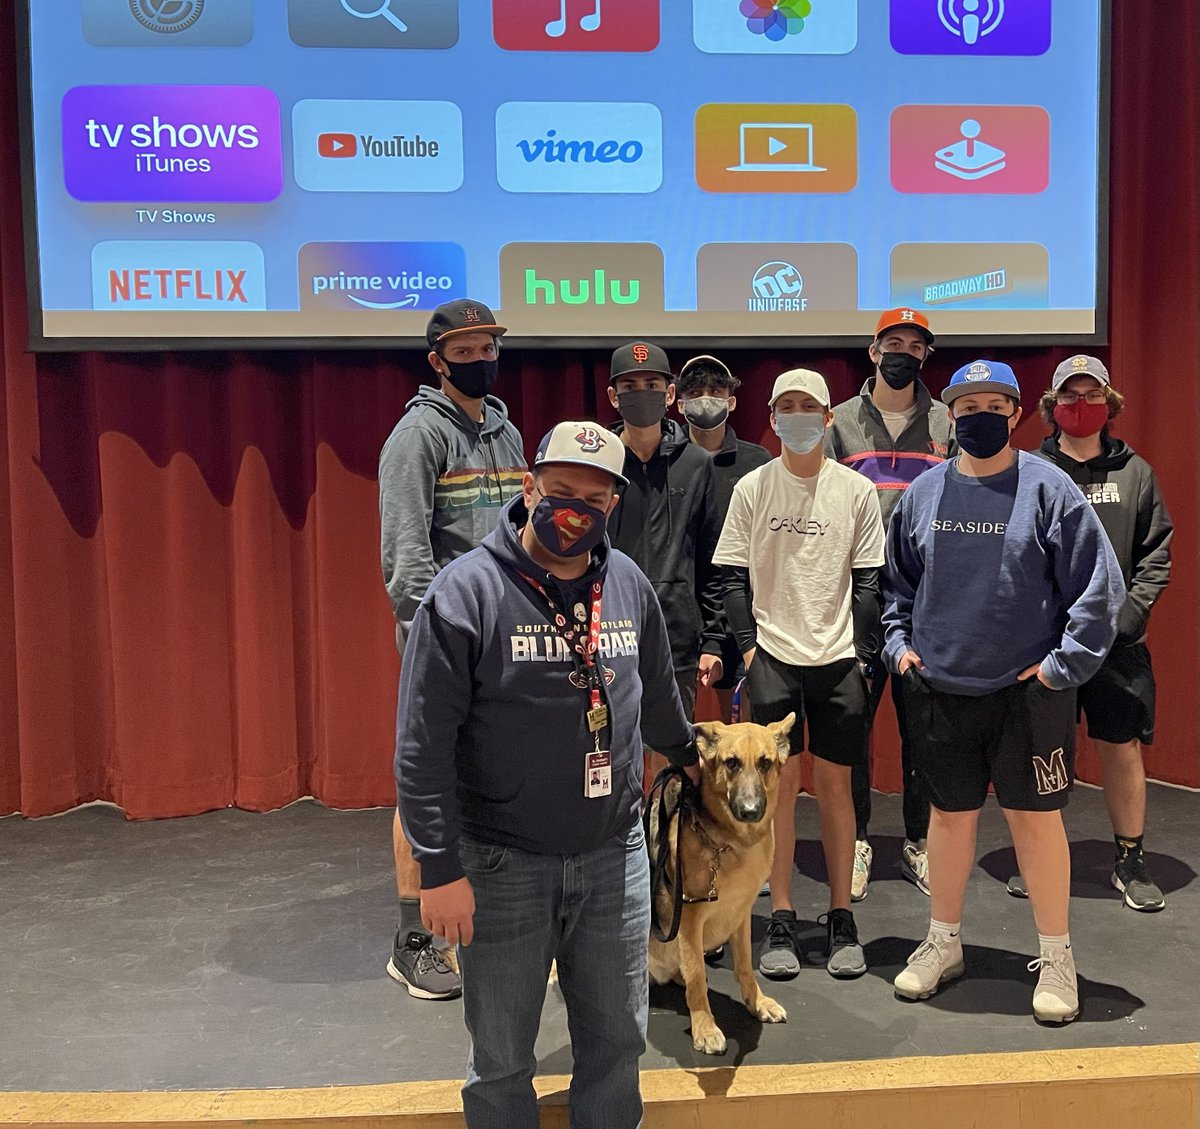 As per the tradition, some of my @SMCACrusaders Baseball In Cinema students rocked ball caps for #NationalHatDay